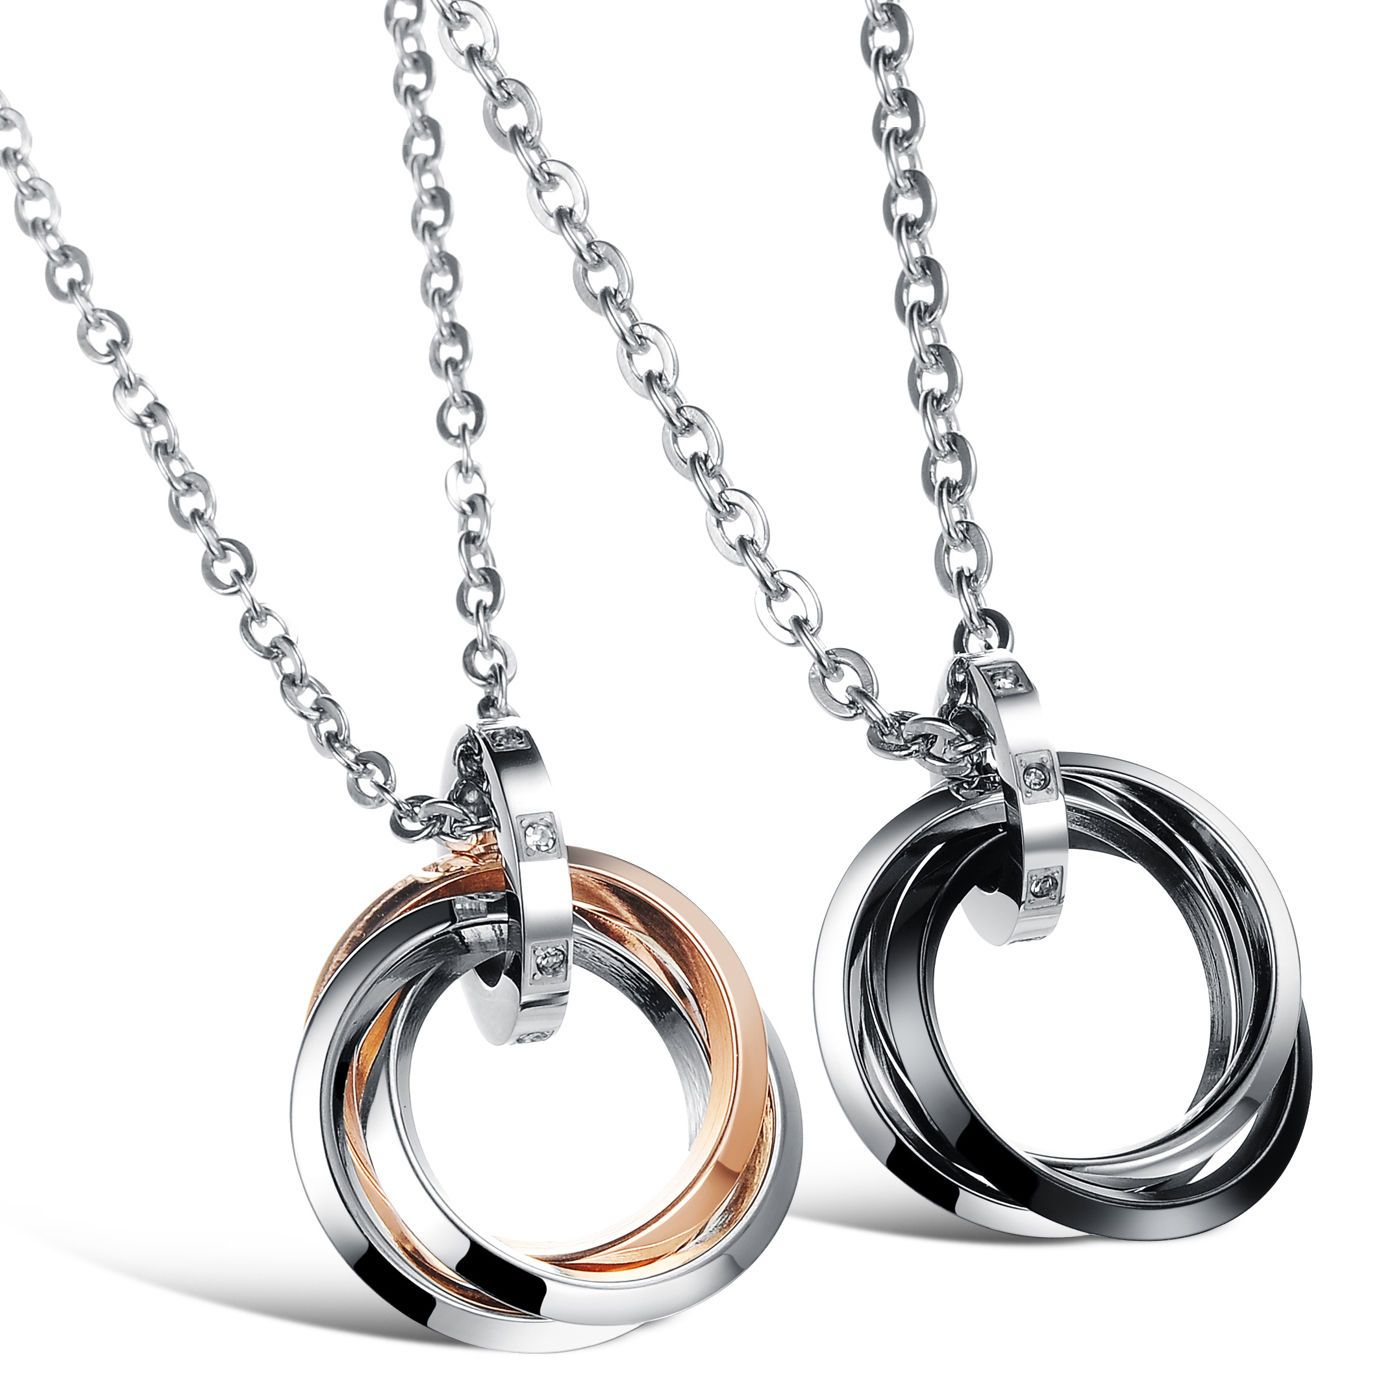 13eb8536c0 His And Hers Stainless Steel Rings Pendant Promise Couples Chain Necklace  Love